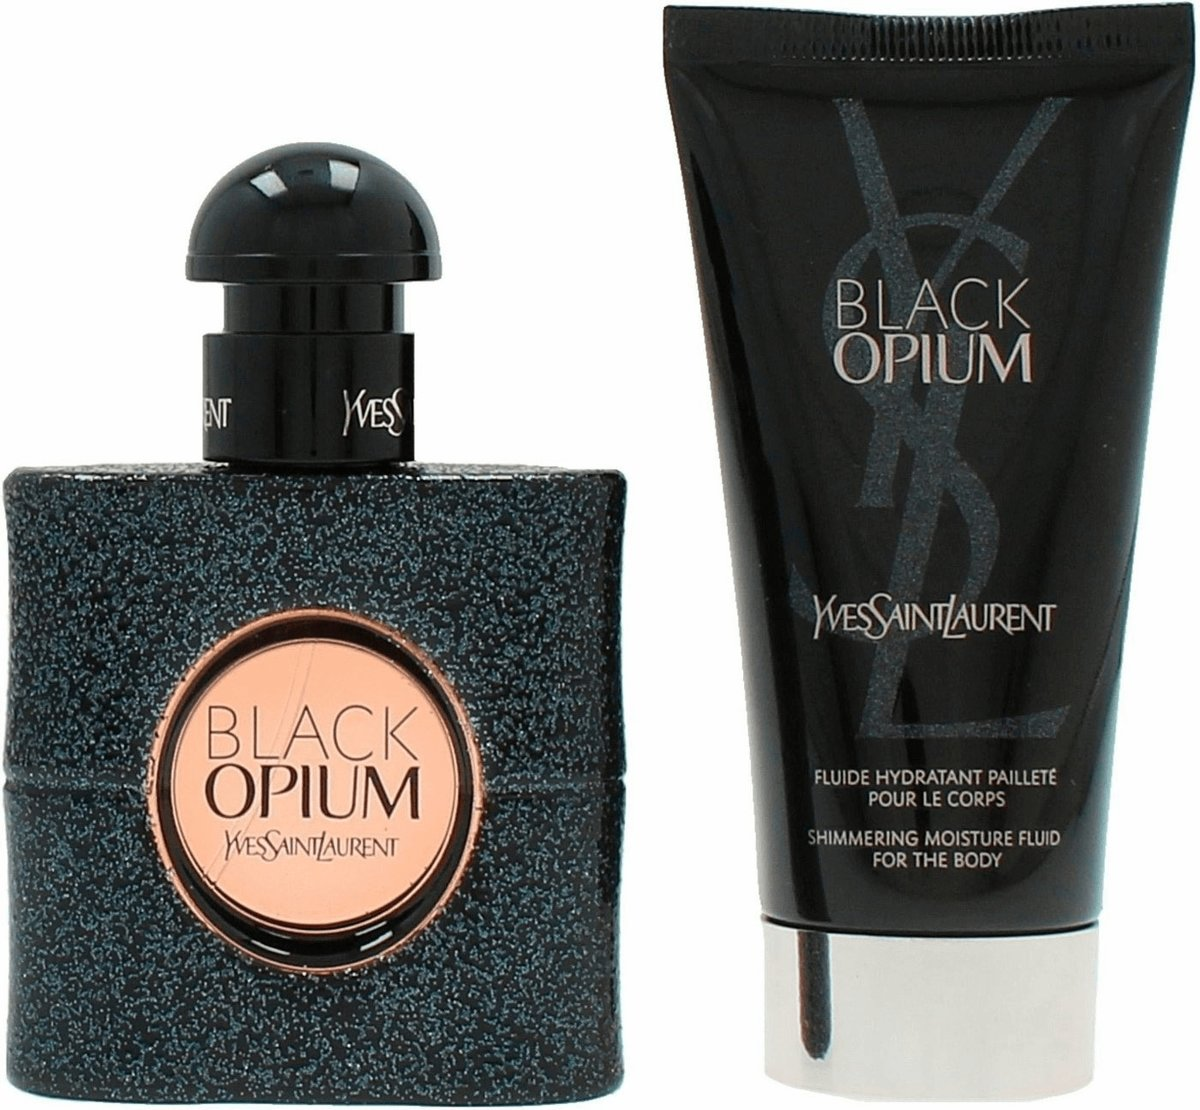 Yves Saint Laurent - Eau de parfum - Black Opium 30ml eau de parfum + 50ml bodylotion - Gifts ml